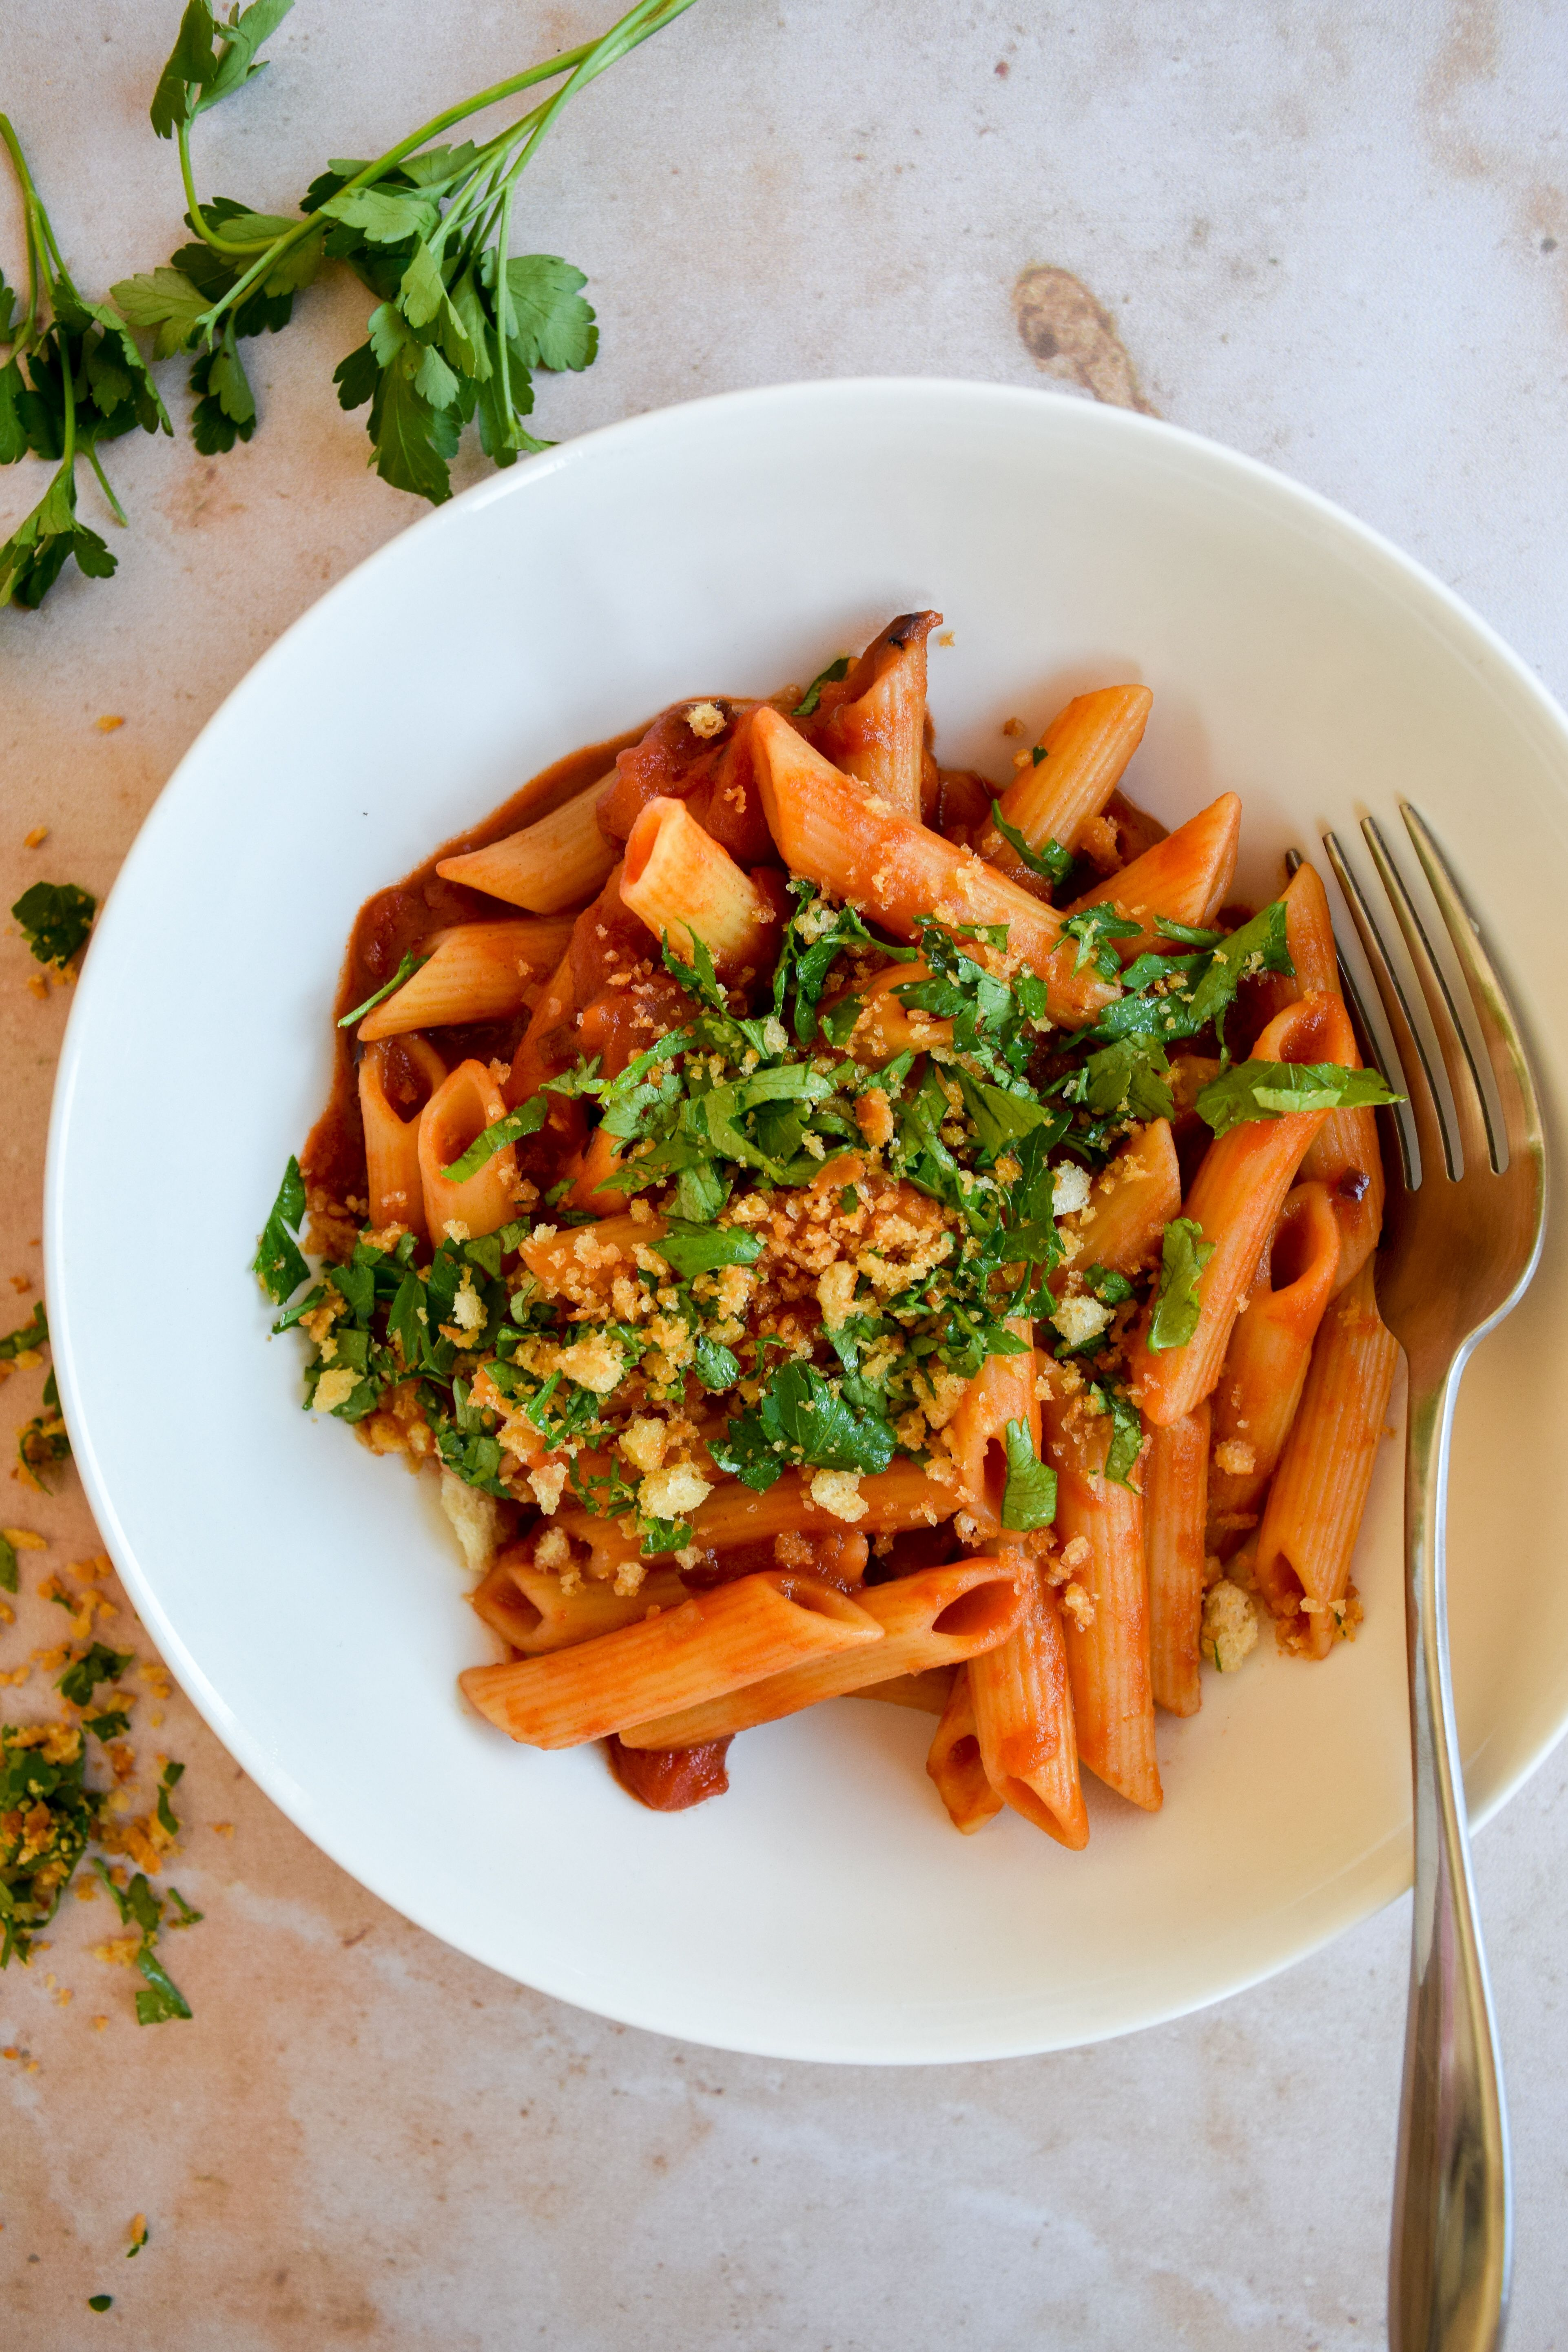 Penne with Crunchy Parsley Breadcrumbs